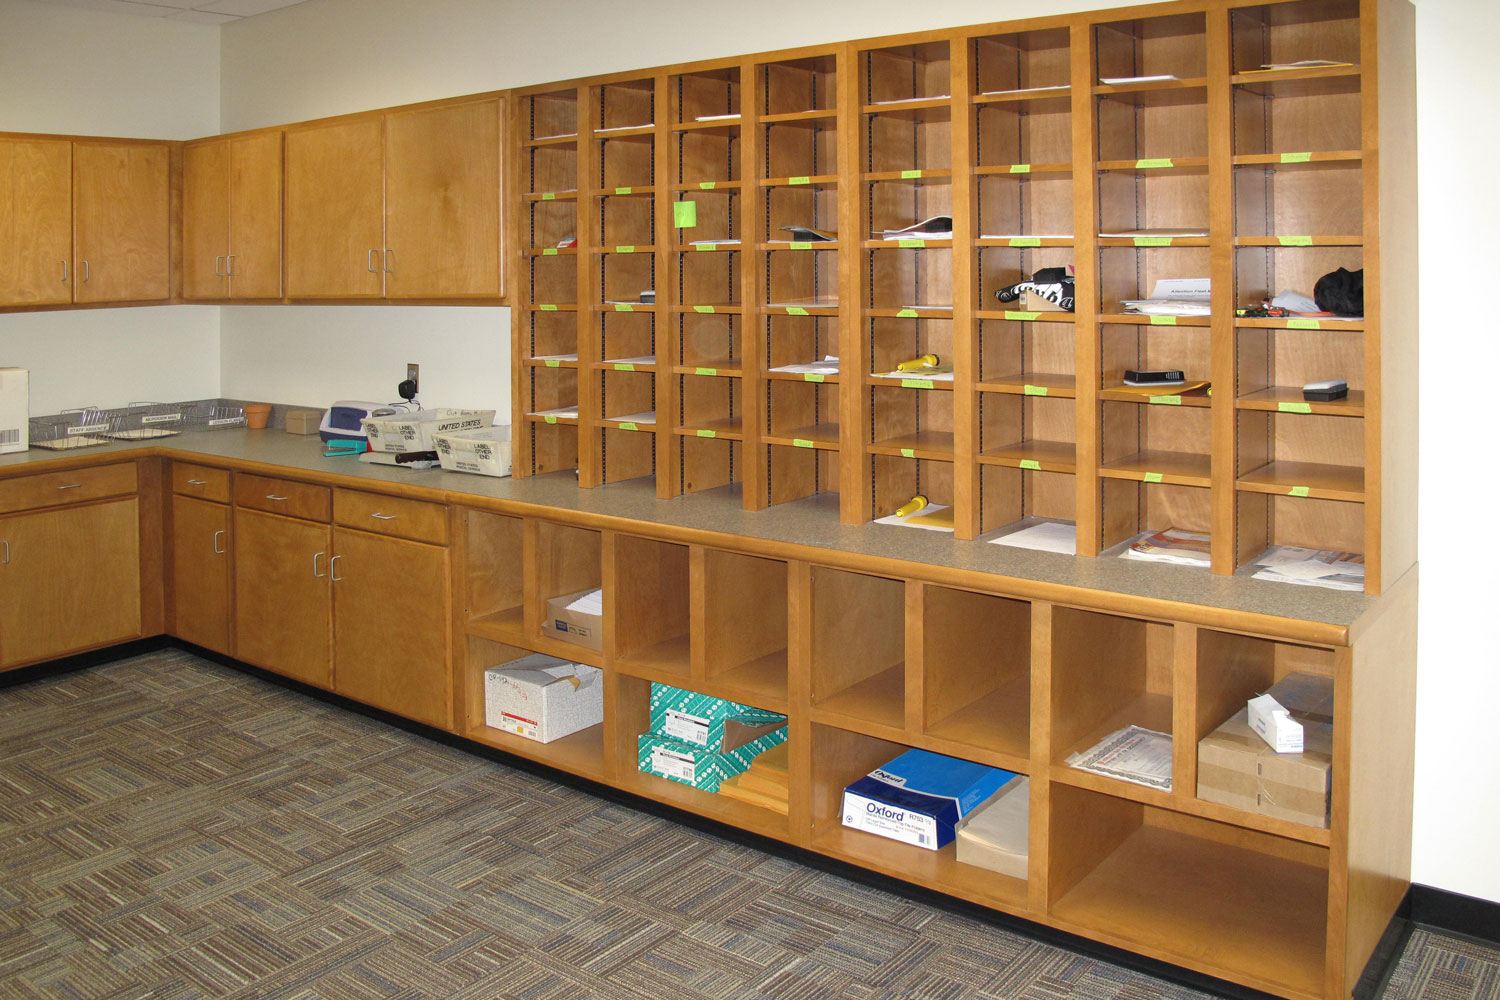 elmwood-shelves.jpg